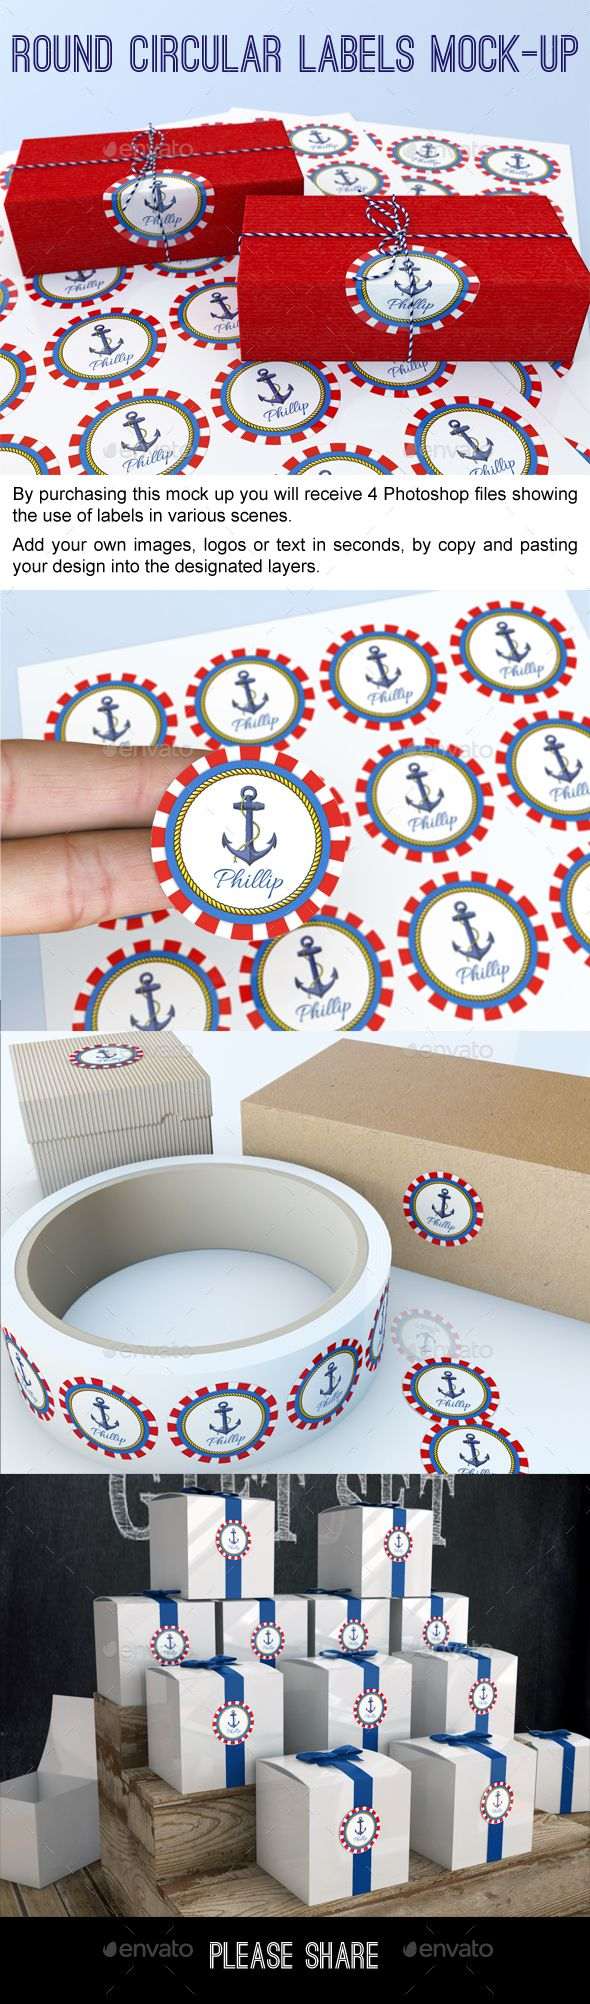 Round Circular Labels and Stickers #Mock-Up - #Signage Print Download here: https://graphicriver.net/item/round-circular-labels-and-stickers-mockup/19711743?ref=alena994